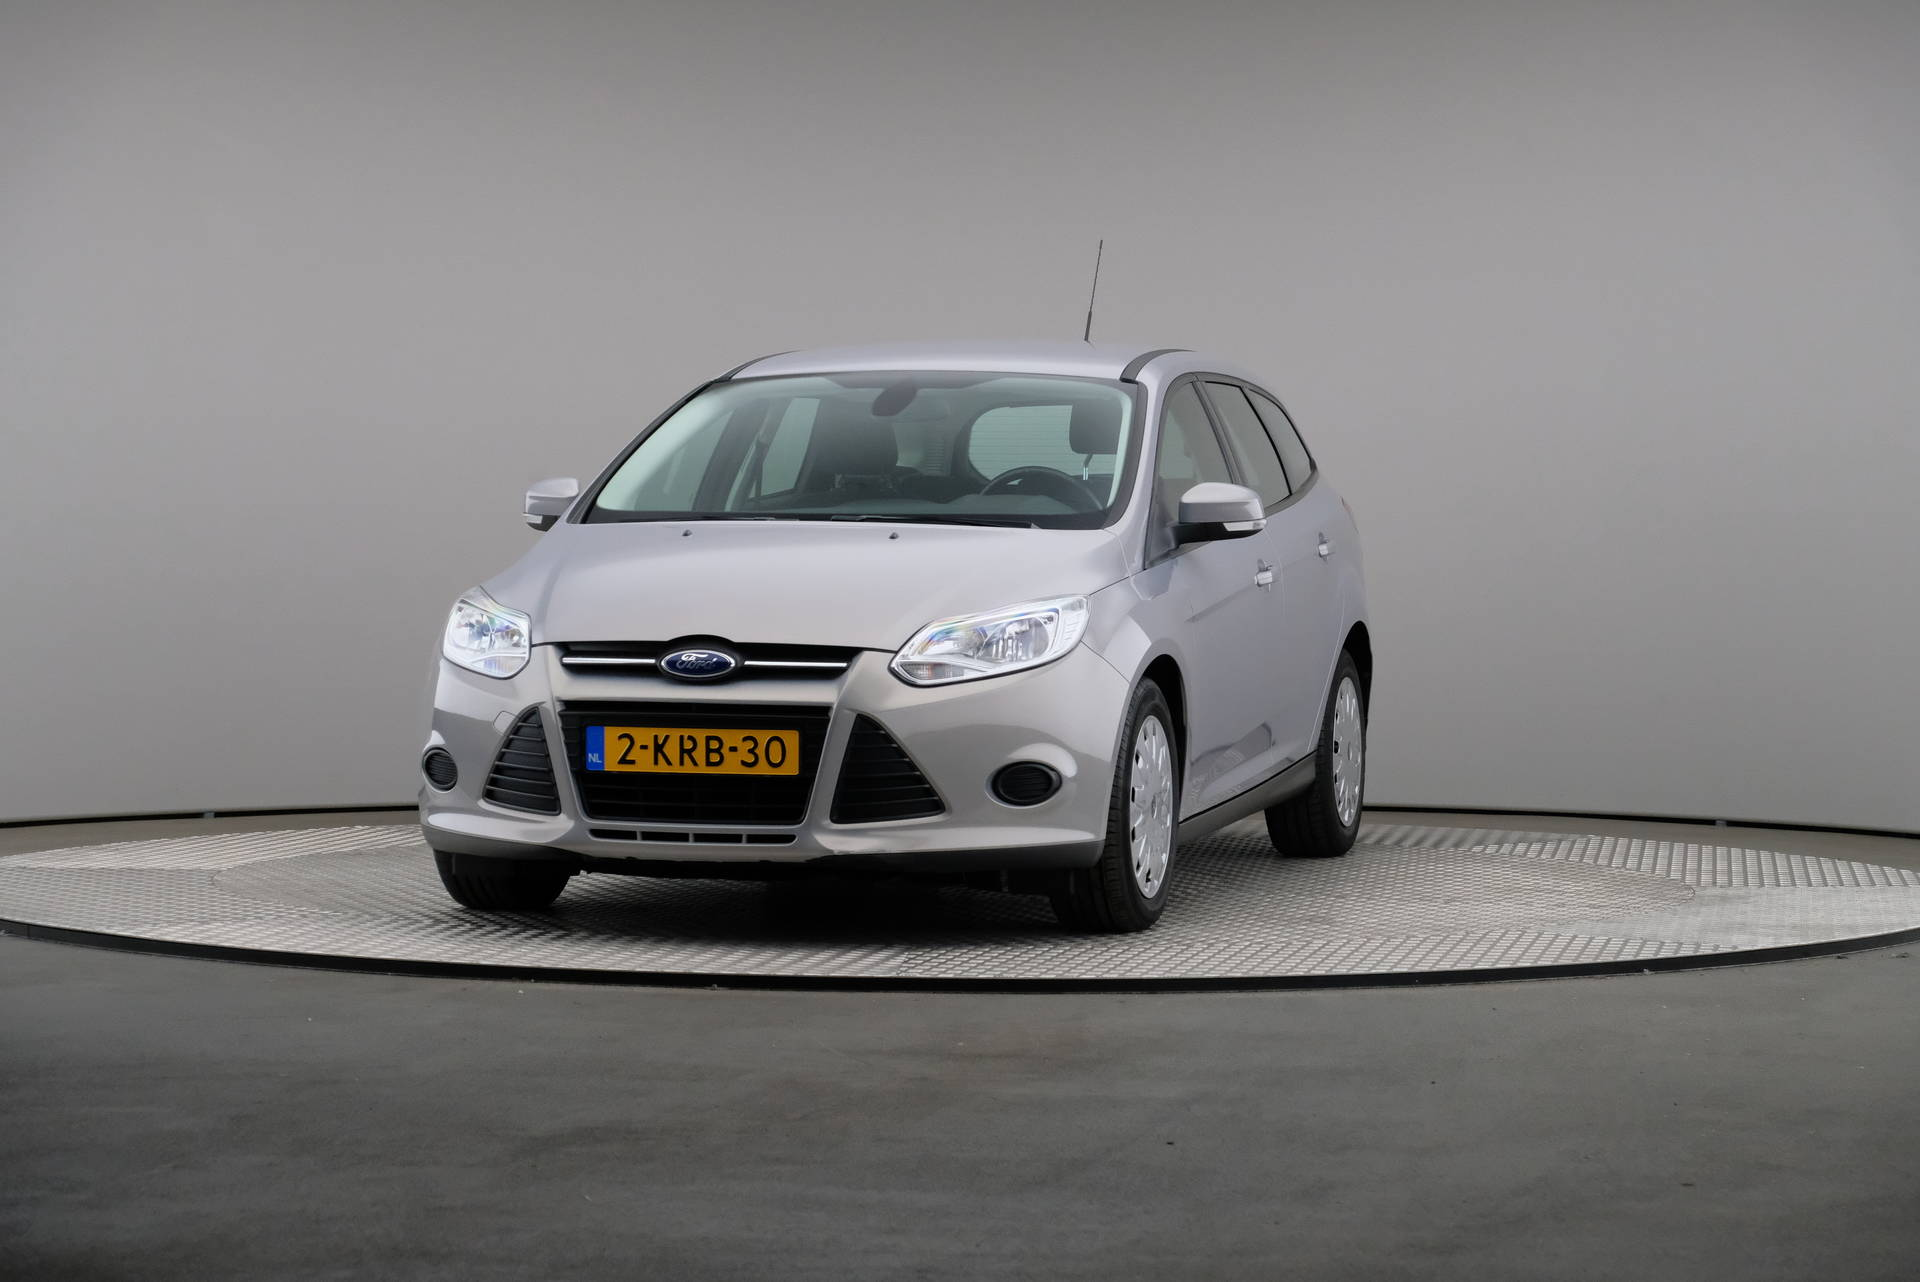 Ford Focus Wagon 1.6 TDCi ECOnetic Lease Trend, Navigatie, 360-image34